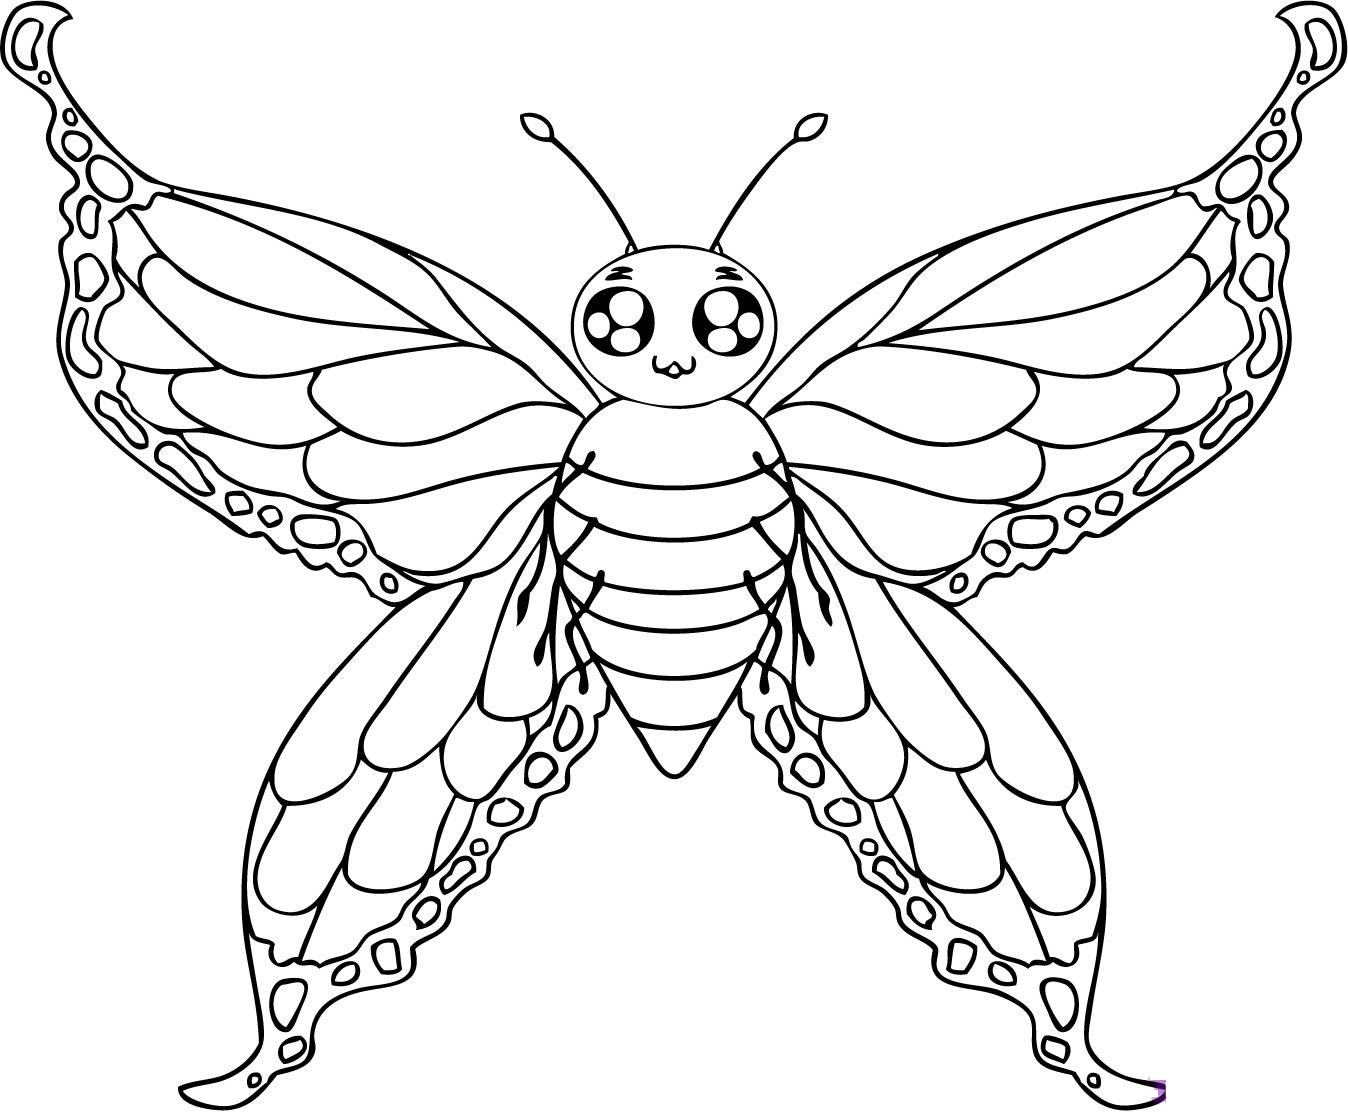 coloring pages with butterflies free printable butterfly coloring pages for kids pages butterflies with coloring